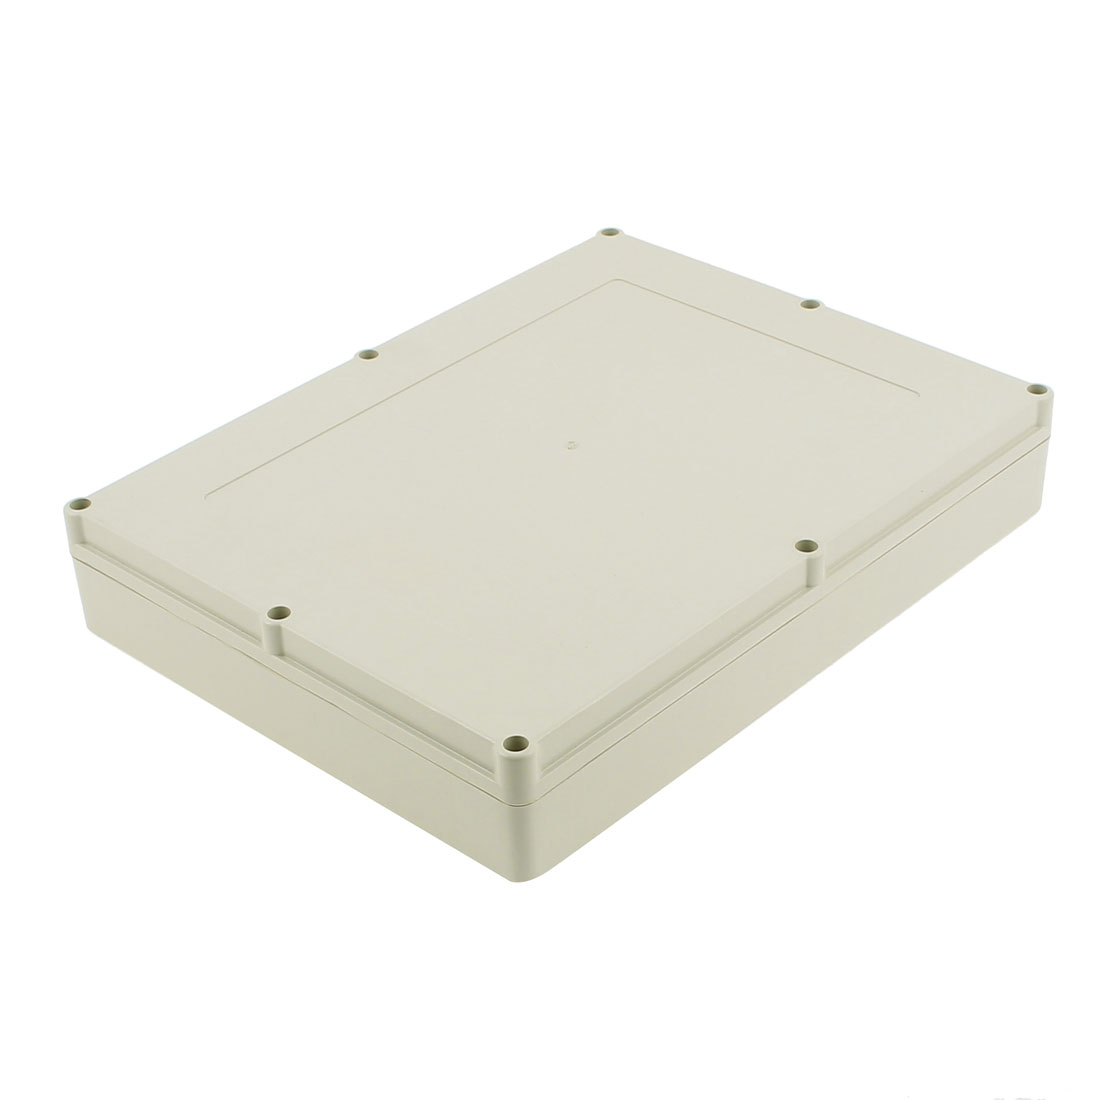 300 x 230 x 50mm Dustproof IP65 Junction Box Terminal Connecting Box Enclosure